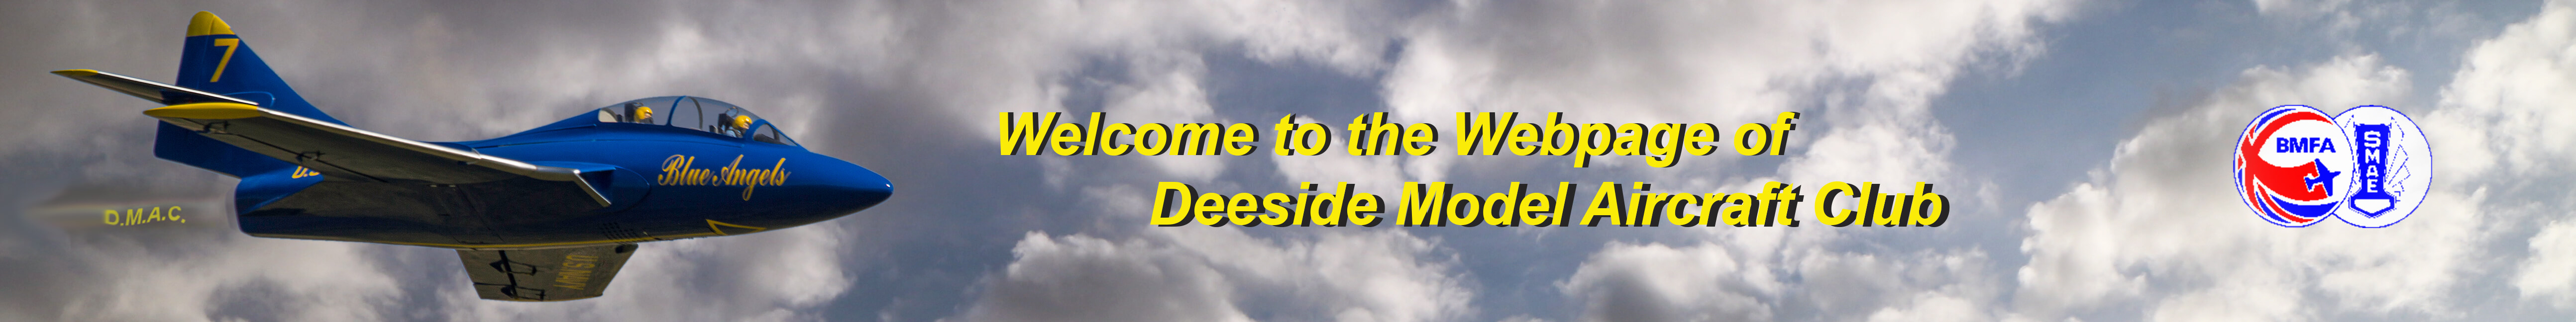 Deeside Model Aircraft Club